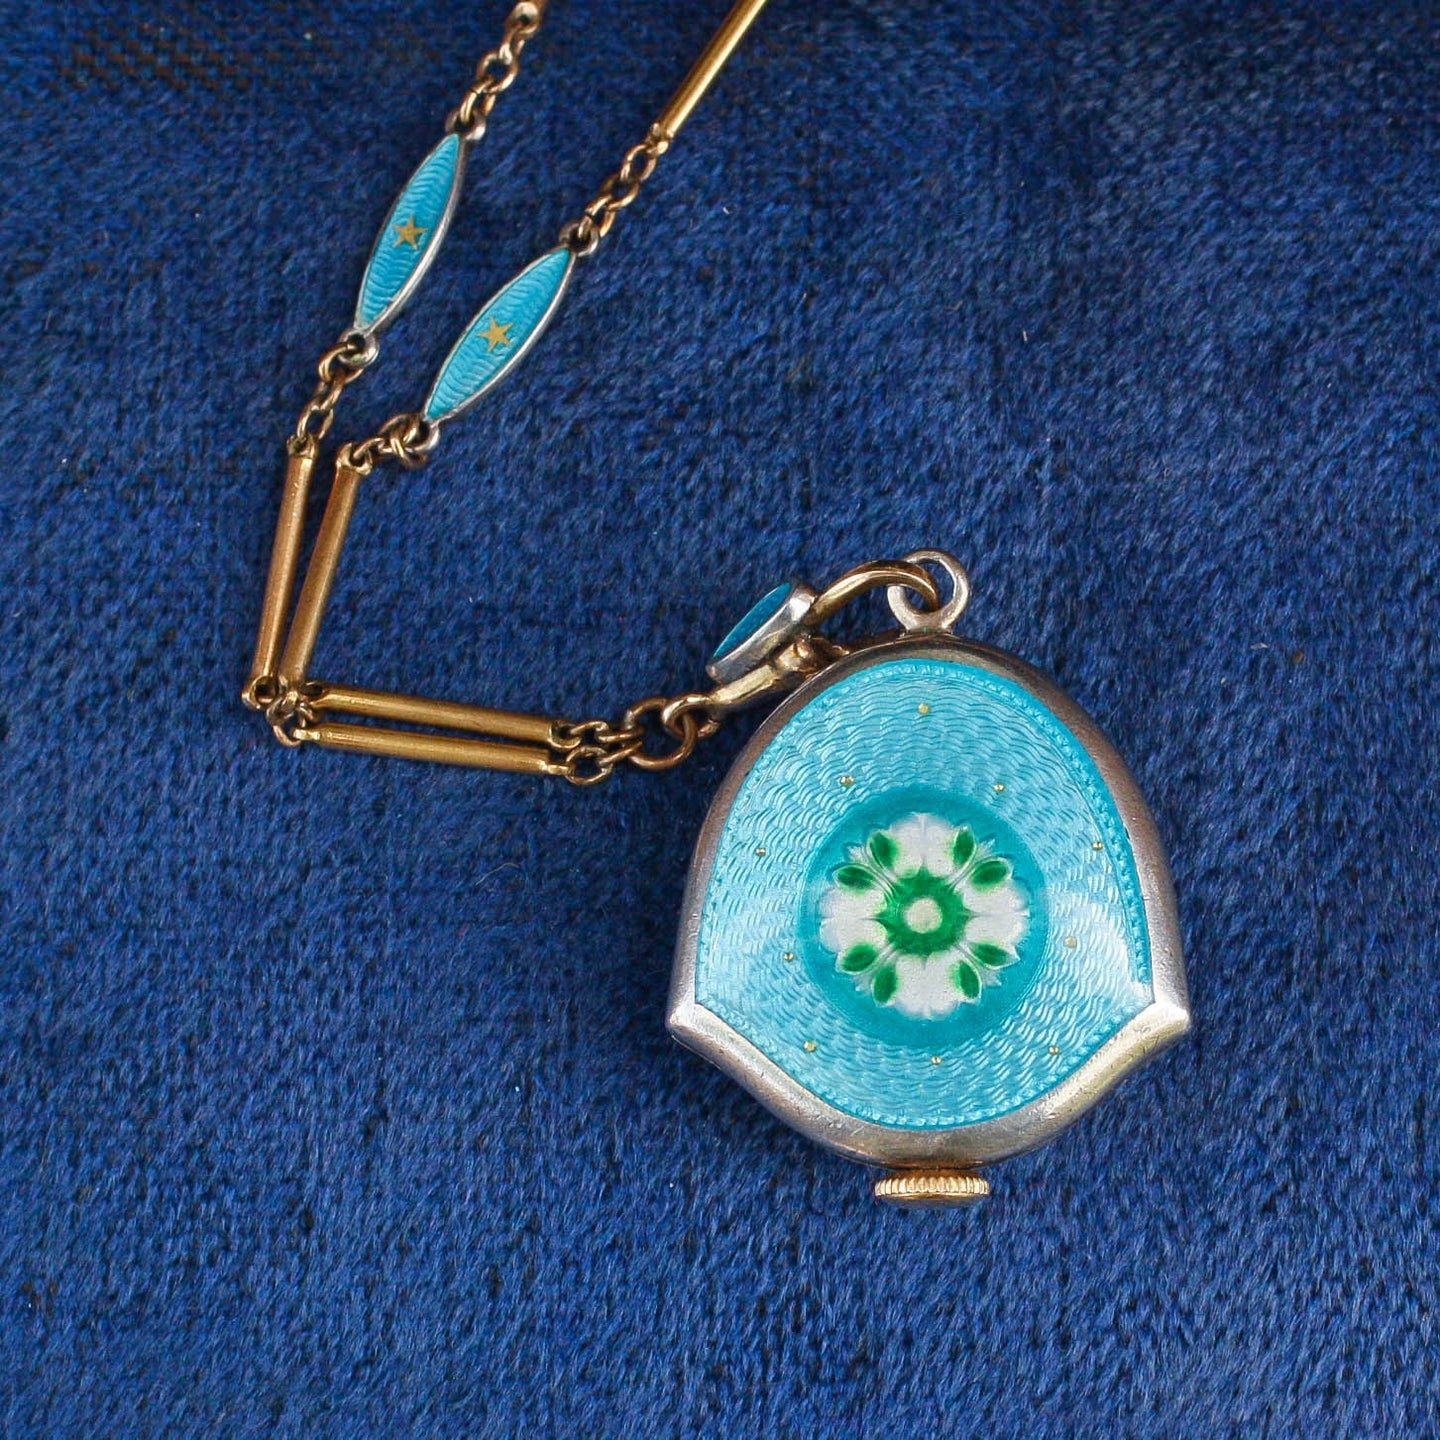 Guilloche Enamel Watch Pendant